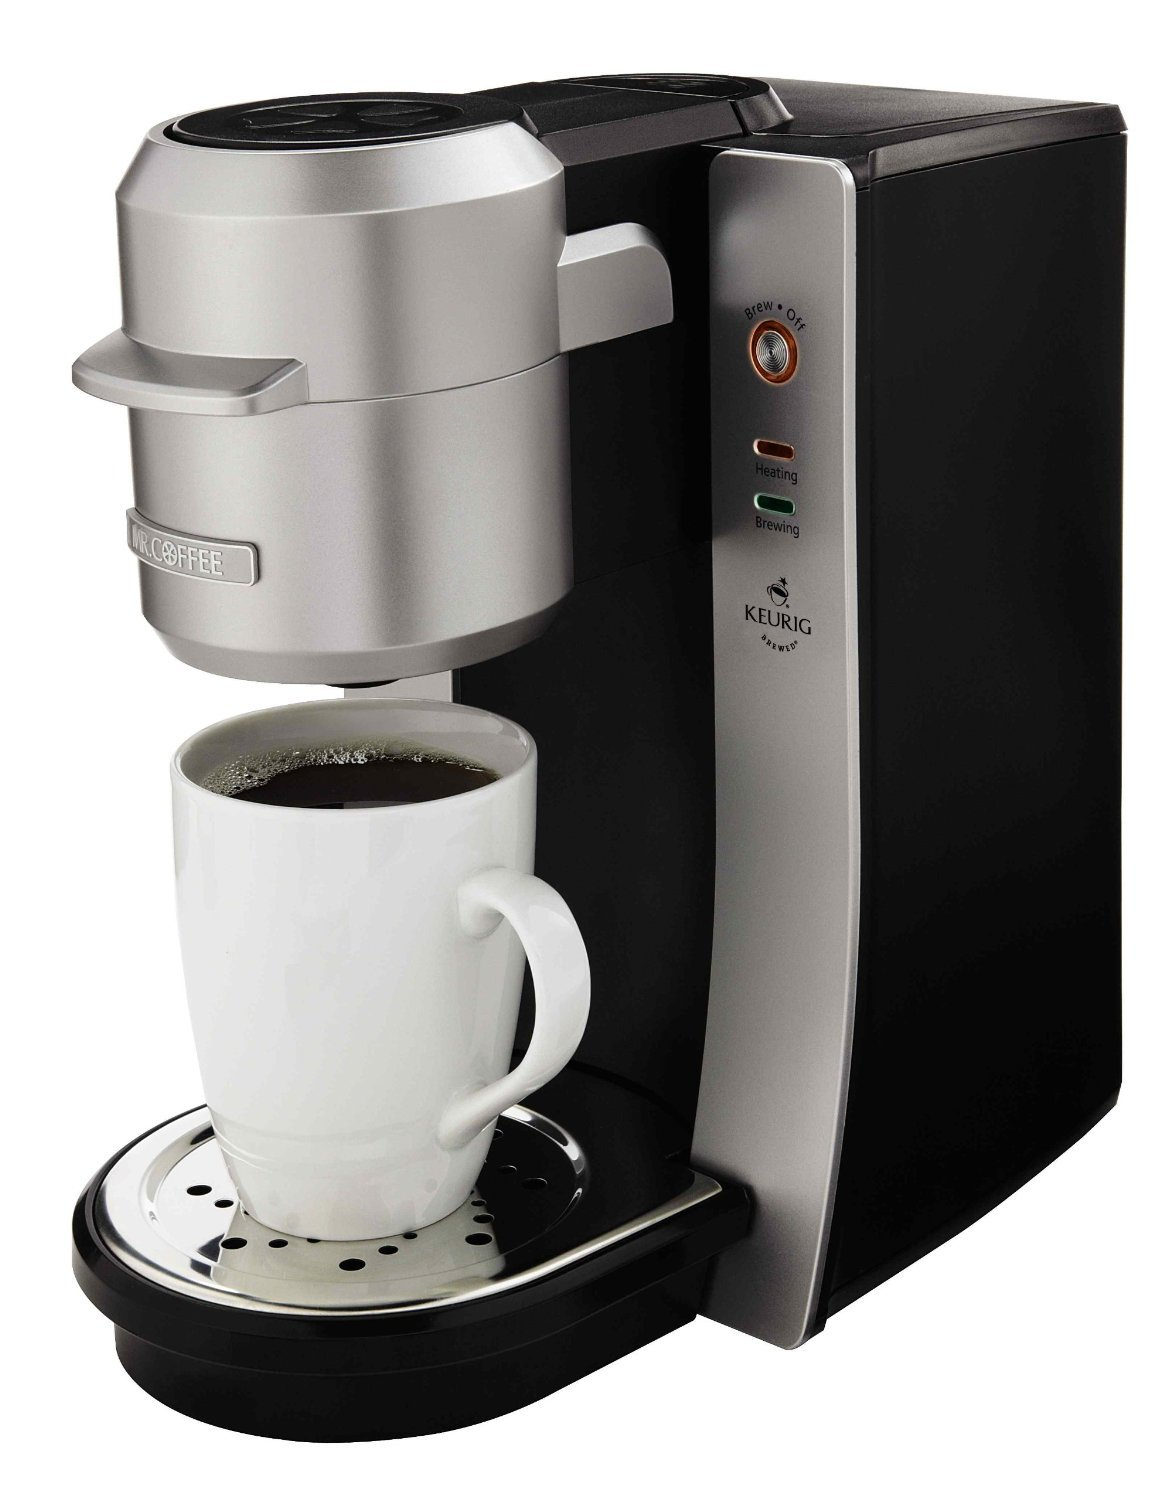 Mr. Coffee BVMC-KG2-001 Single Serve Coffee Maker, Silver by Mr. Coffee